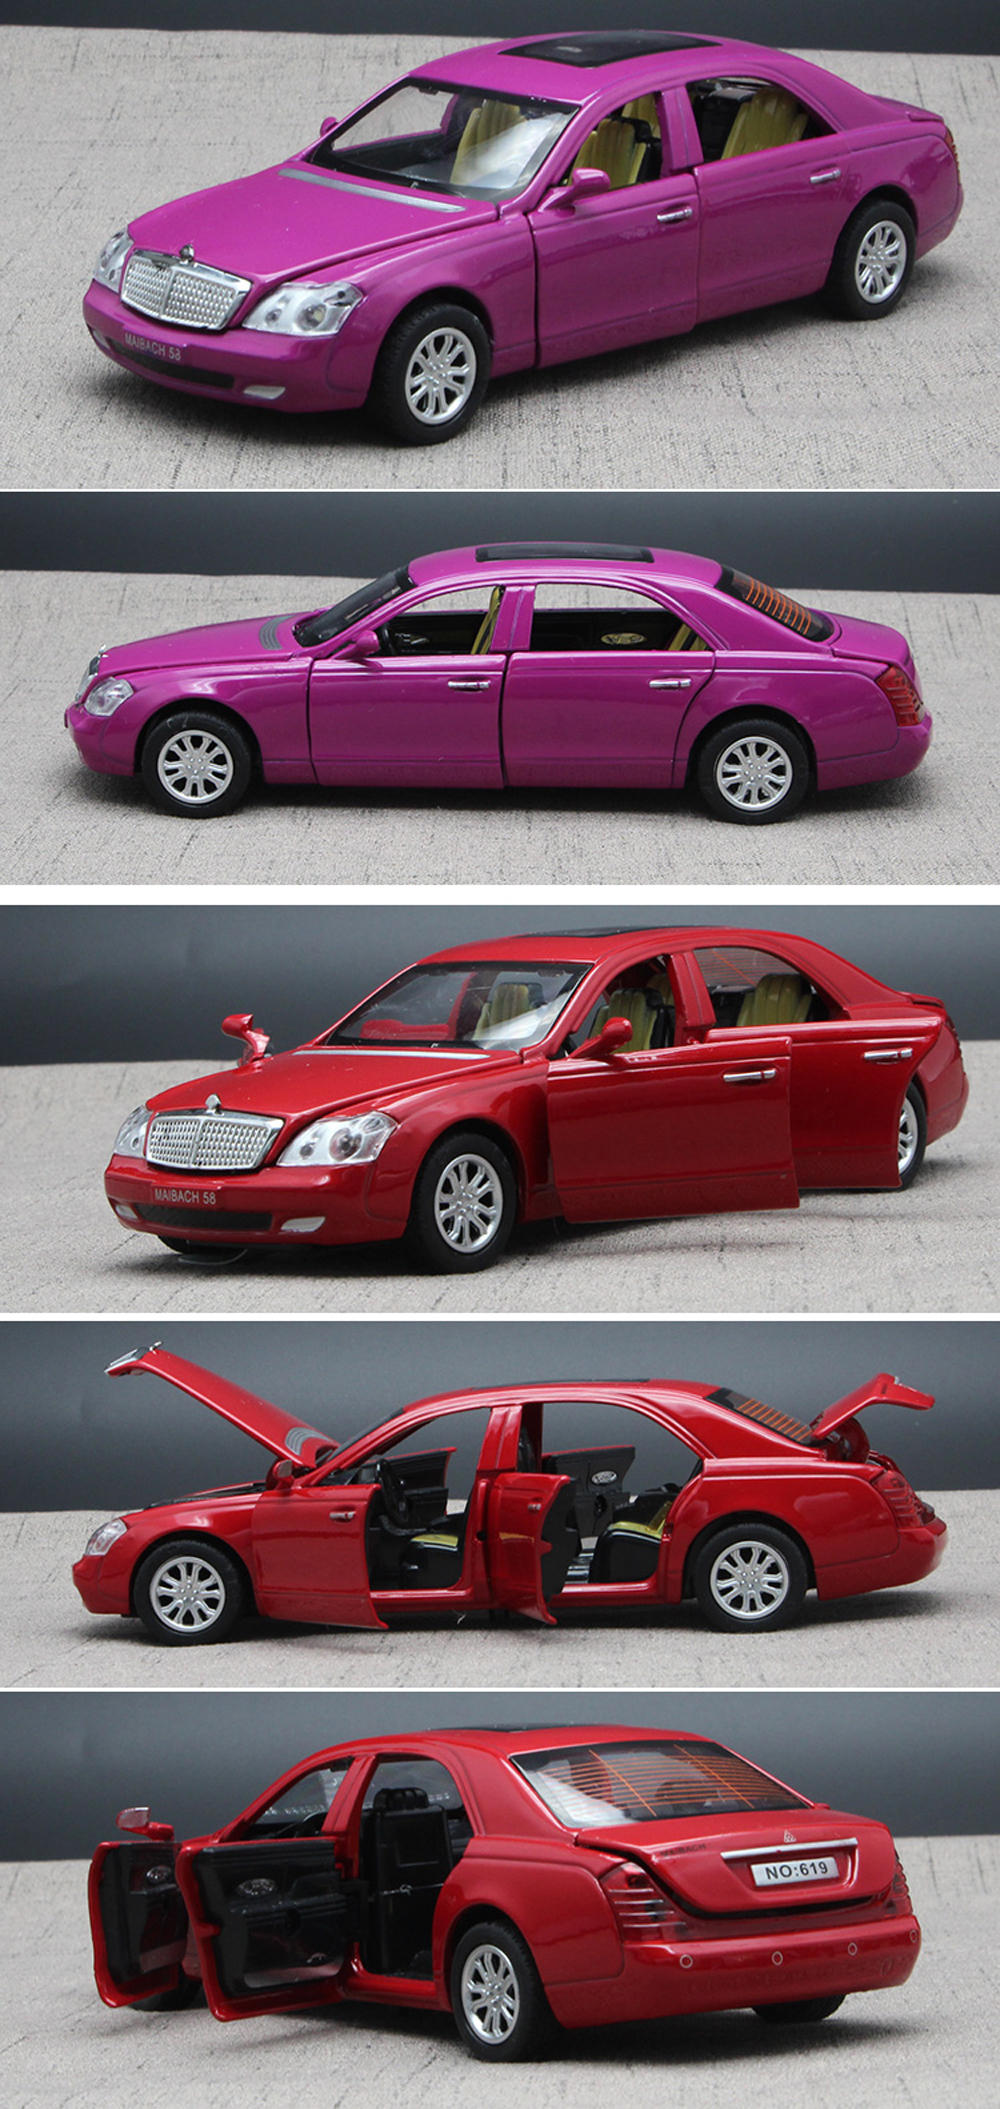 diecast-maybach-model-car-replica-TOy-car_05_07